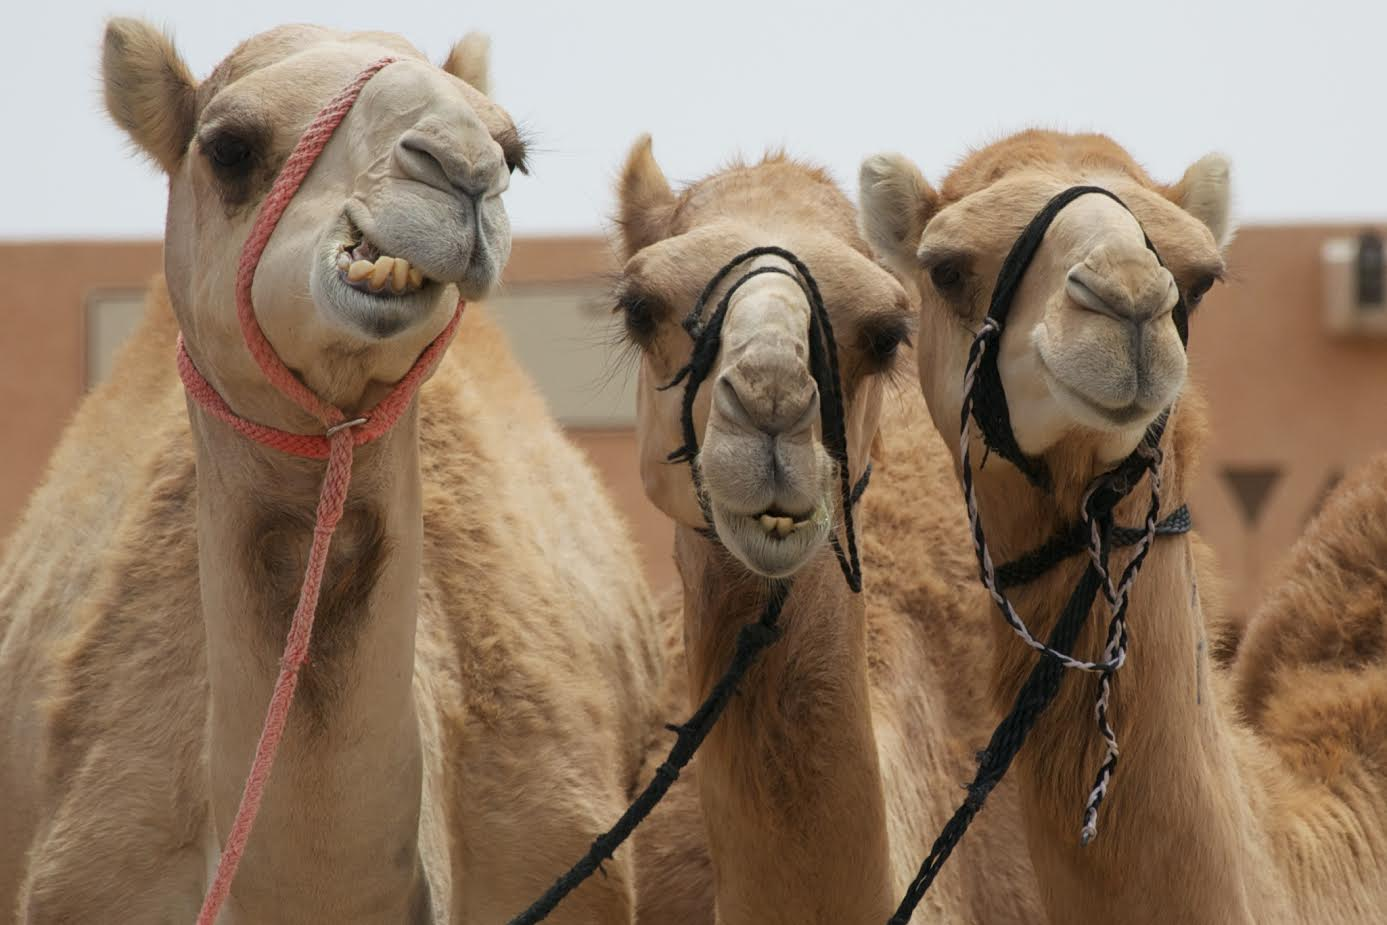 Al Ain camels - a comprehensive guide to Abu Dhabi